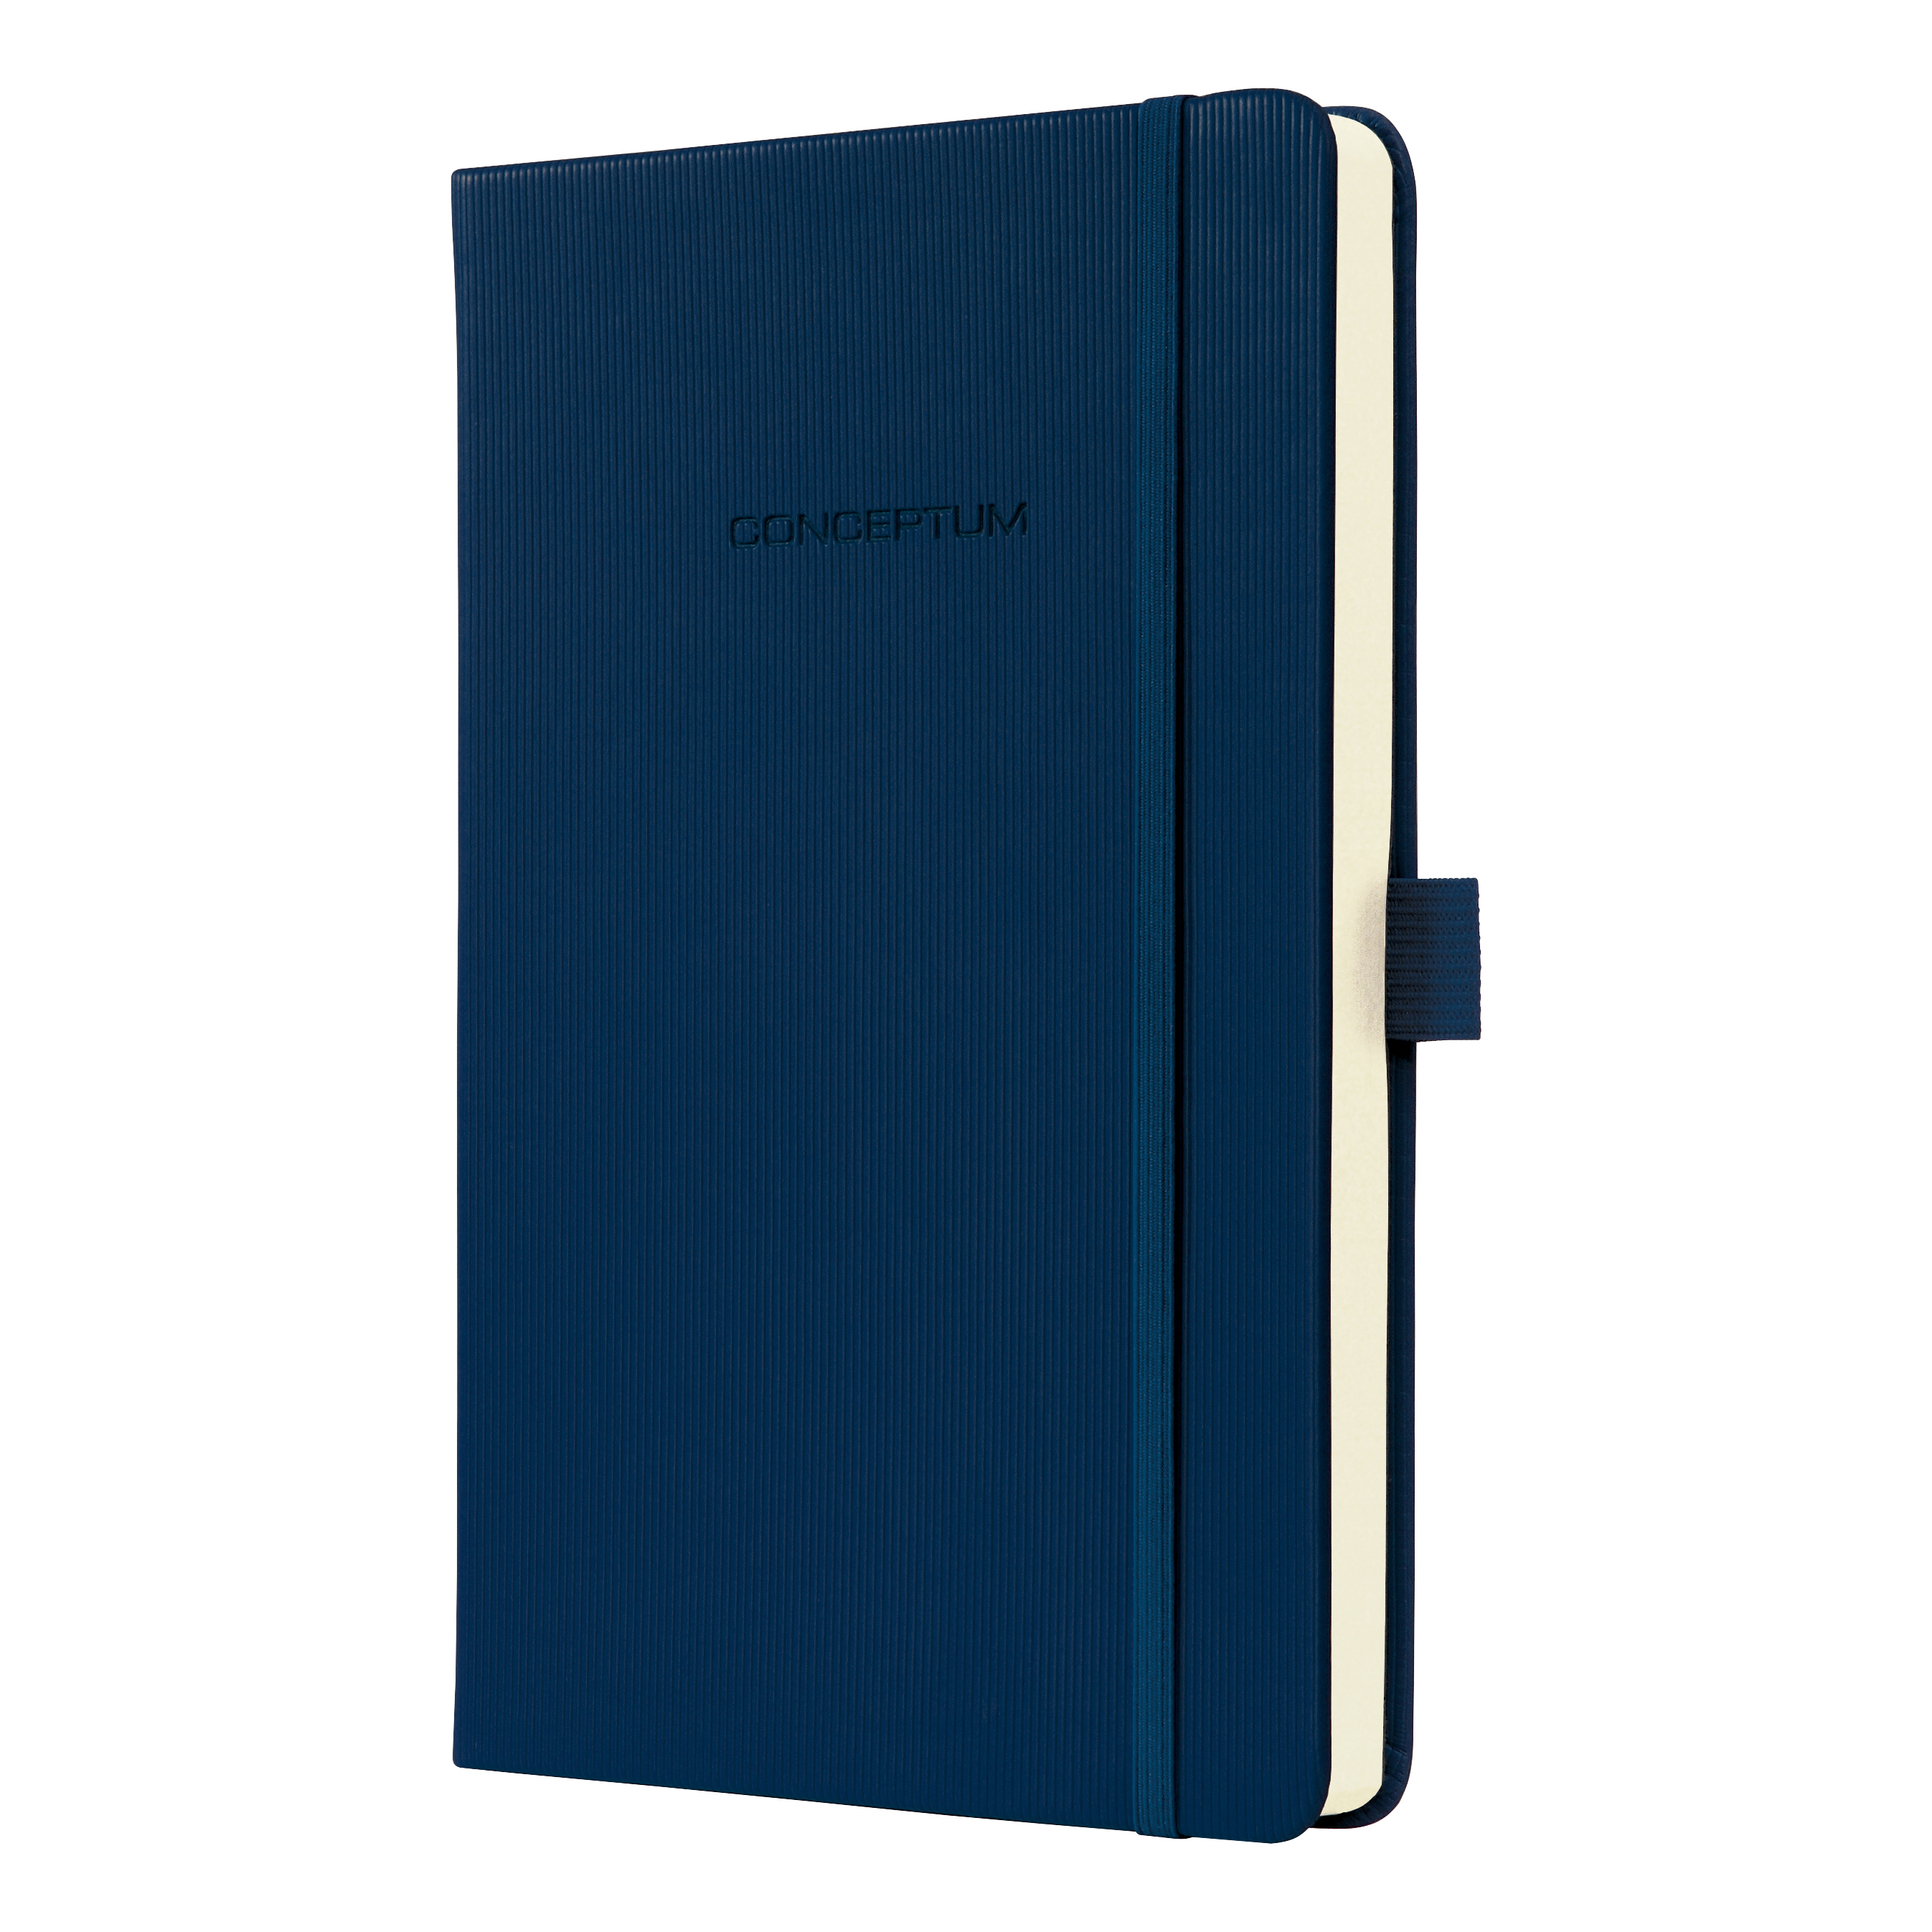 Sigel Conceptum Notebook Hard Cover 80gsm Ruled and Numbered 194pp PEFC A5 Midnight Blue Ref C0577